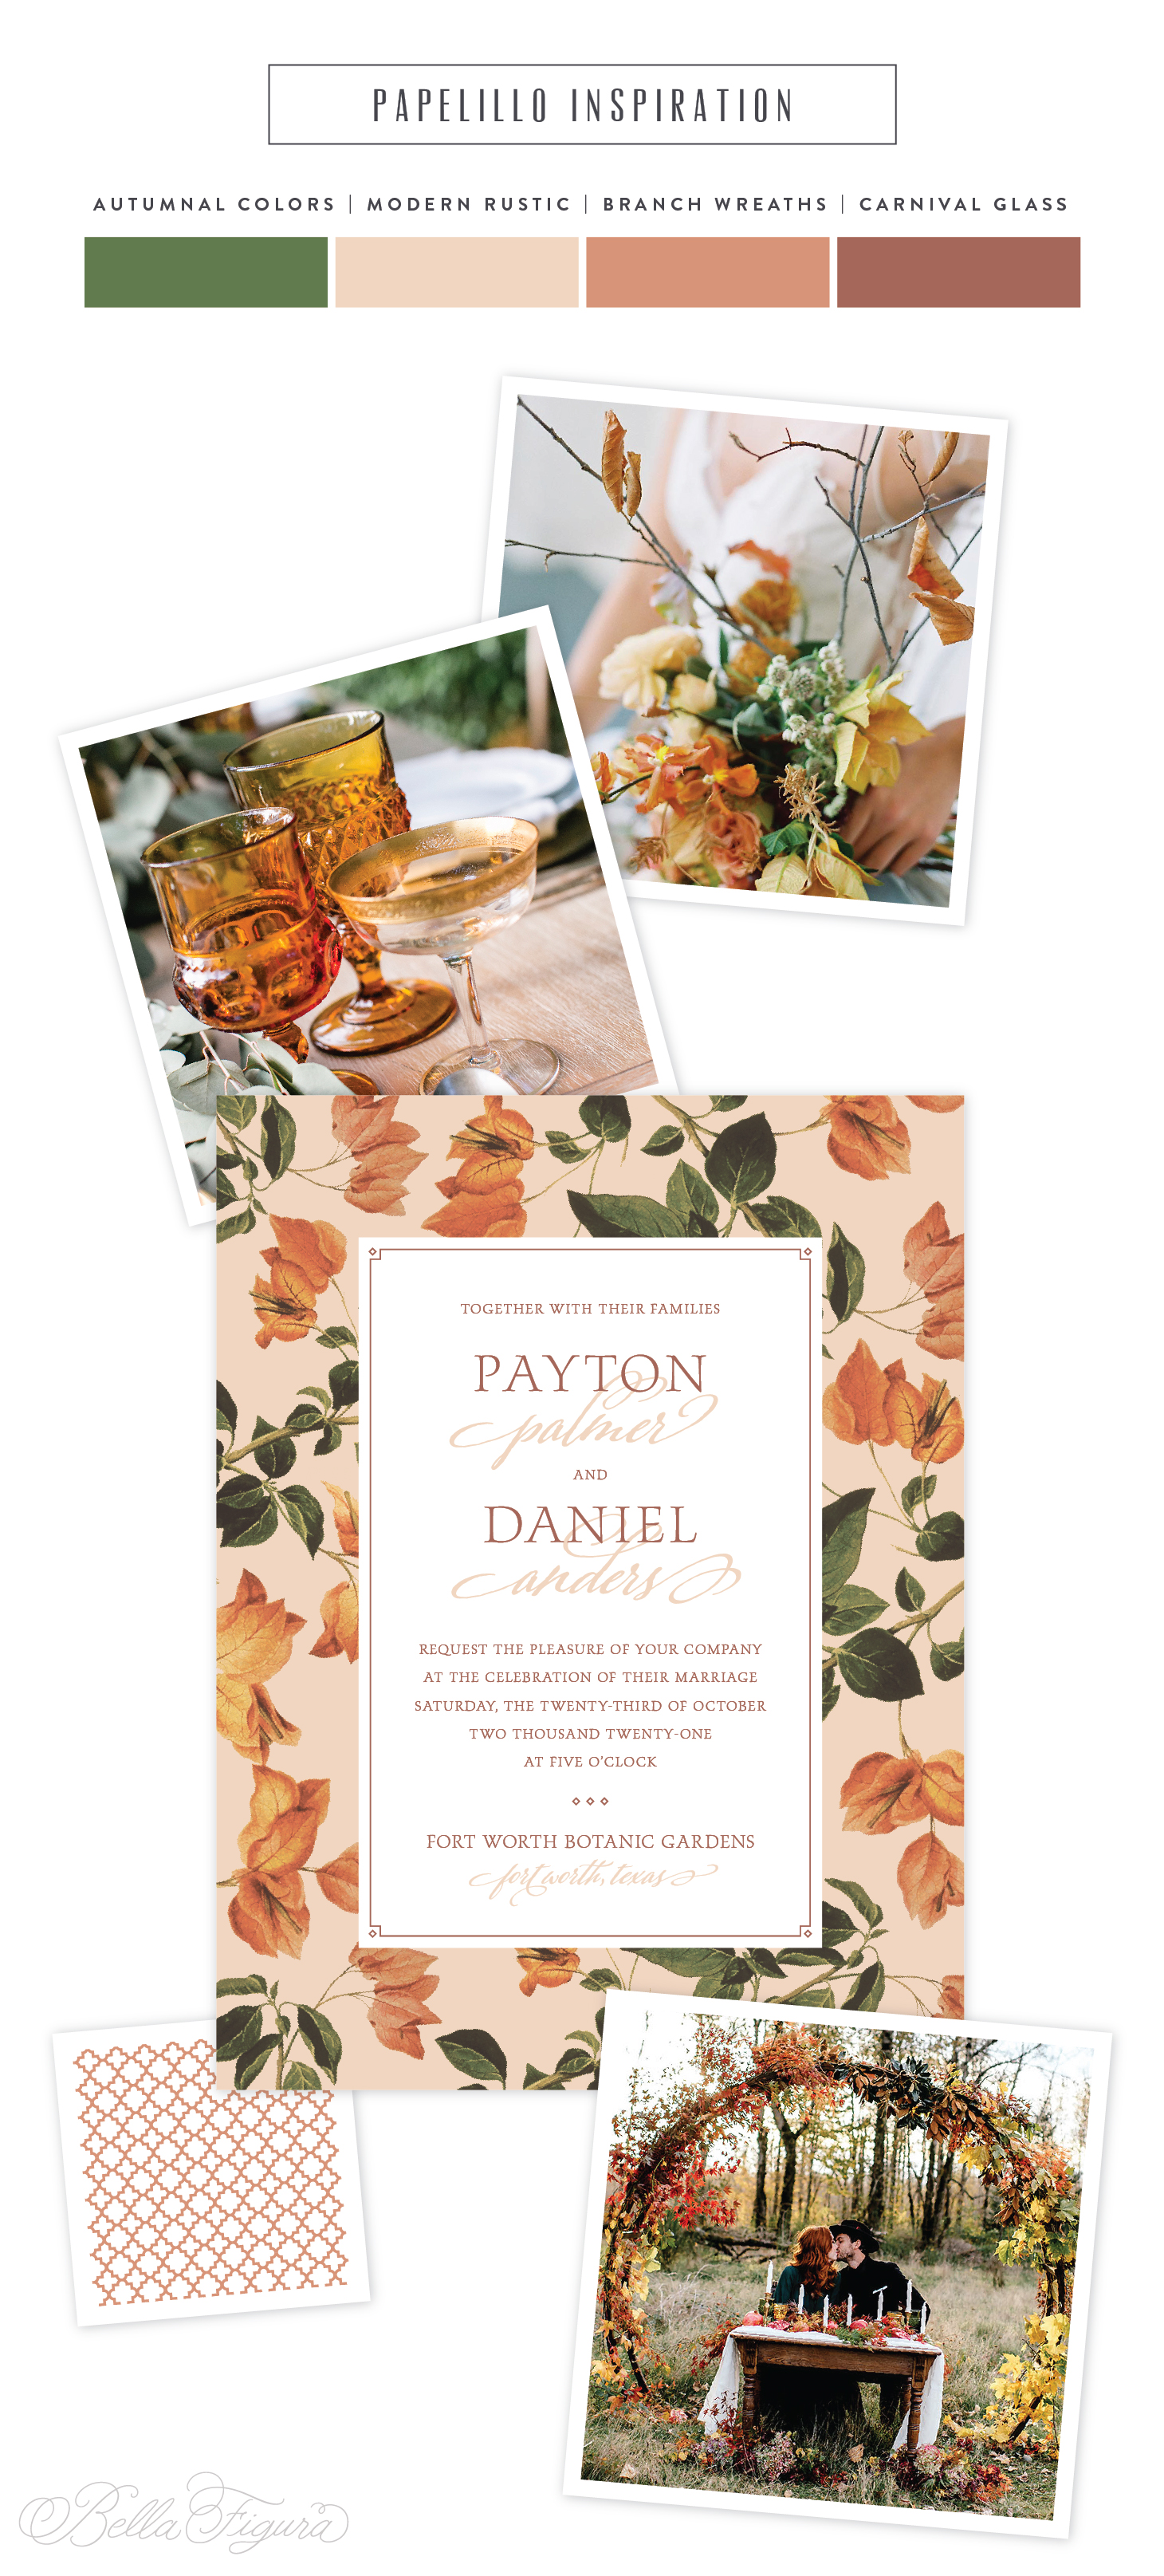 Earth-tone vintage inspired wedding invitation